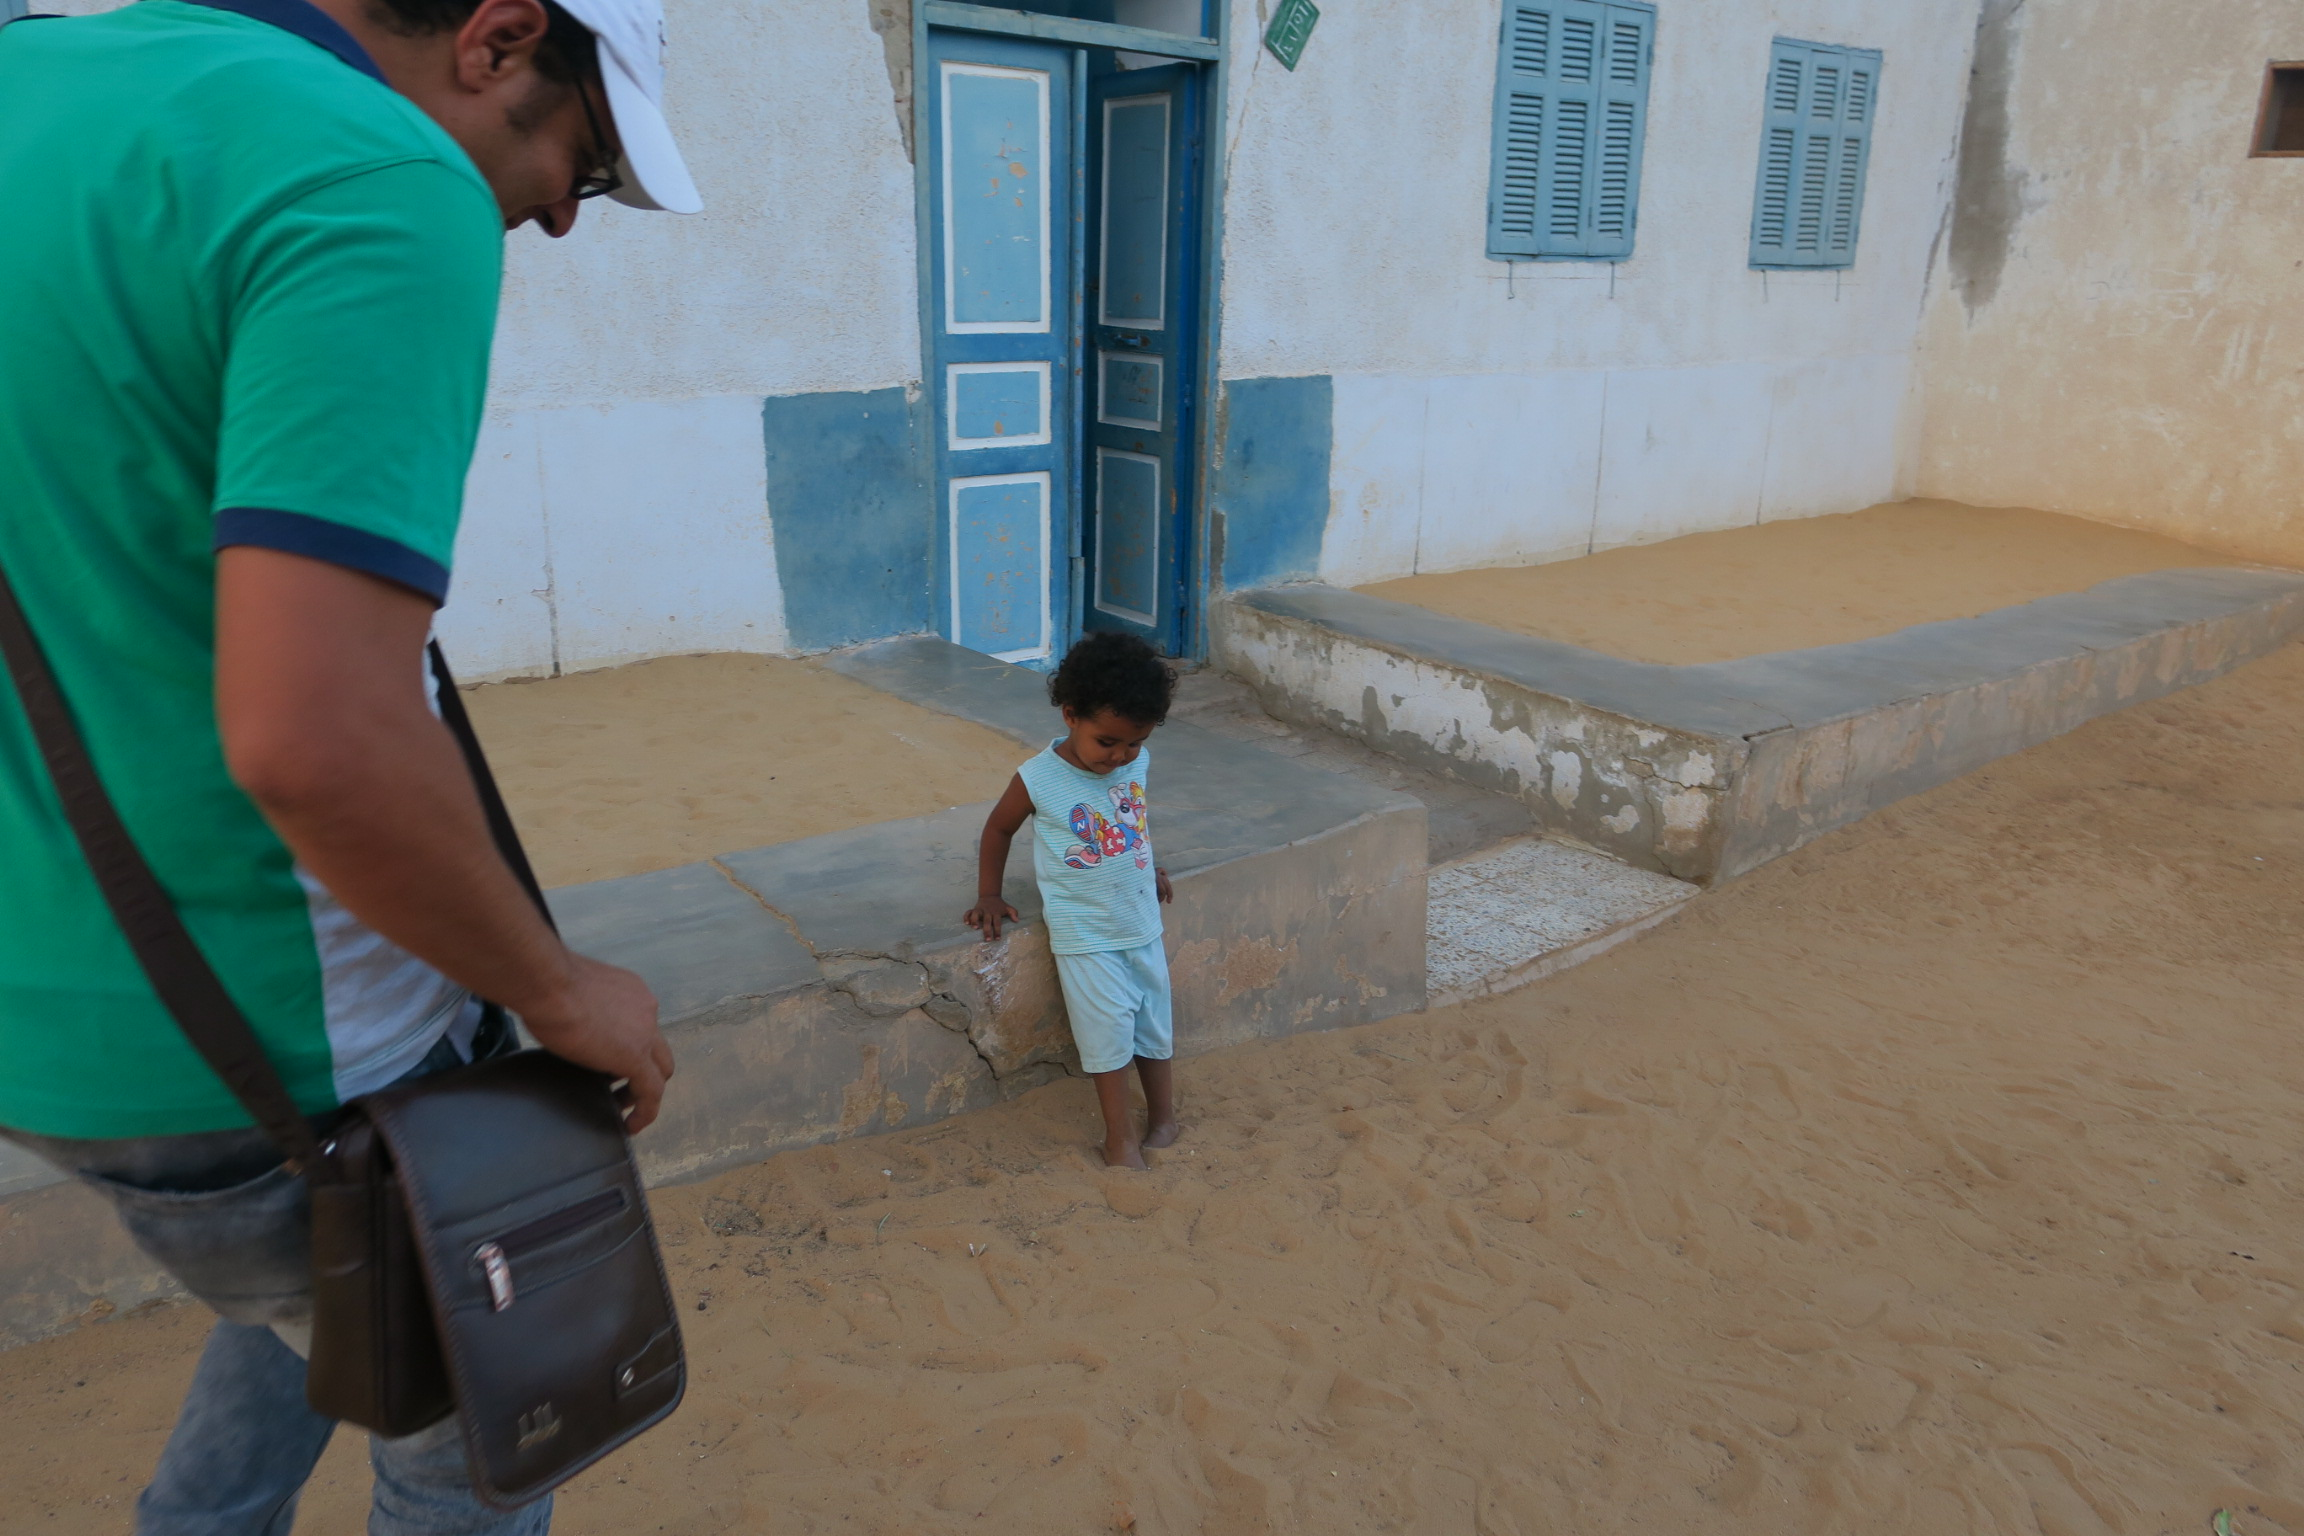 Mahmoud Ali- Tour Guide for Aswan interacting with one of the Beautiful children in the Nubian Village